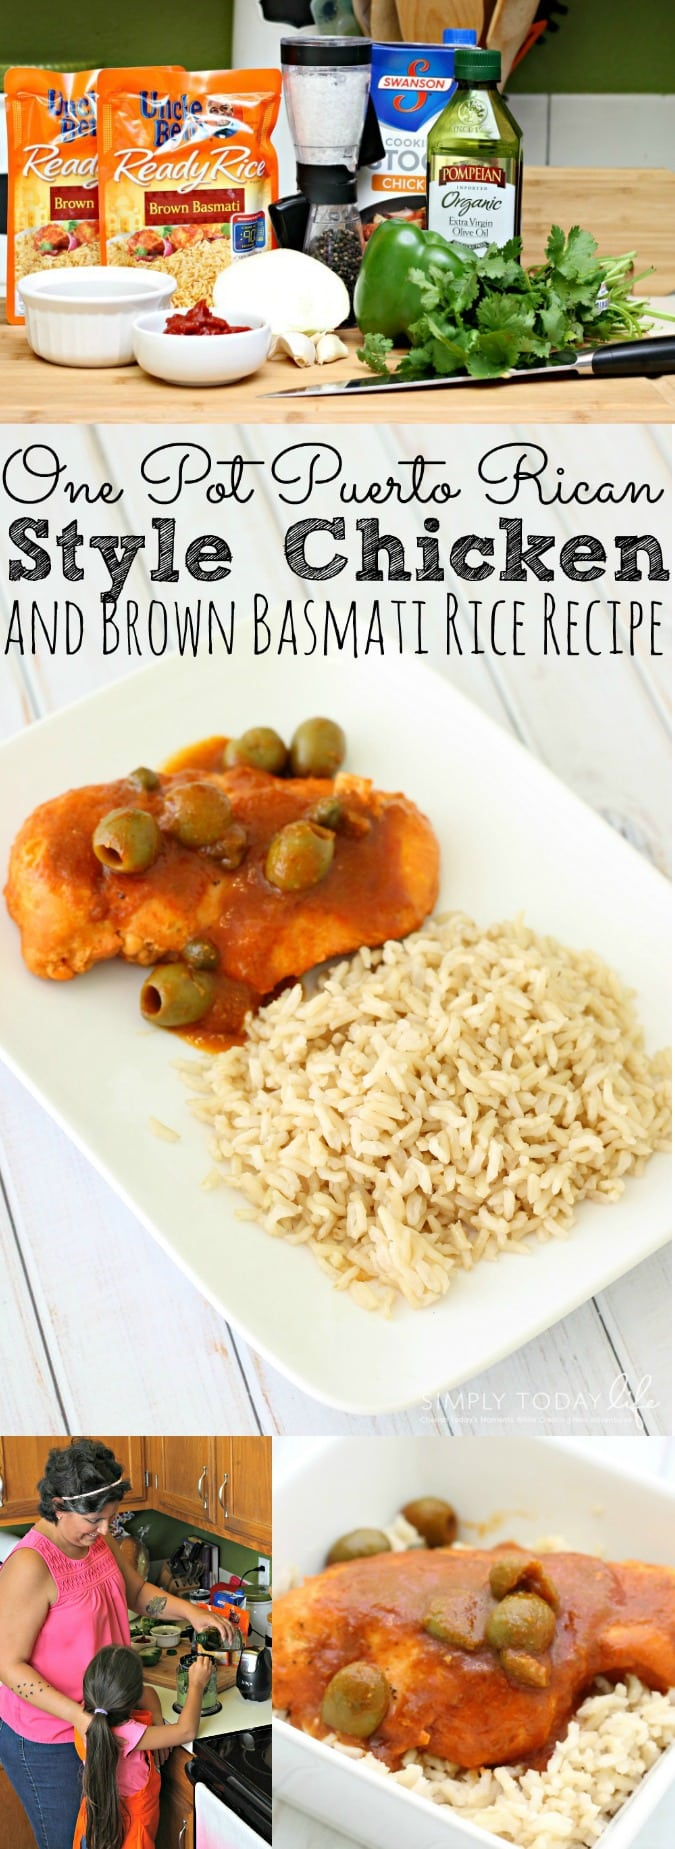 One Pot Puerto Rican Style Chicken and Brown Basmati Uncle Ben's Rice Recipe - simplytodaylife.com